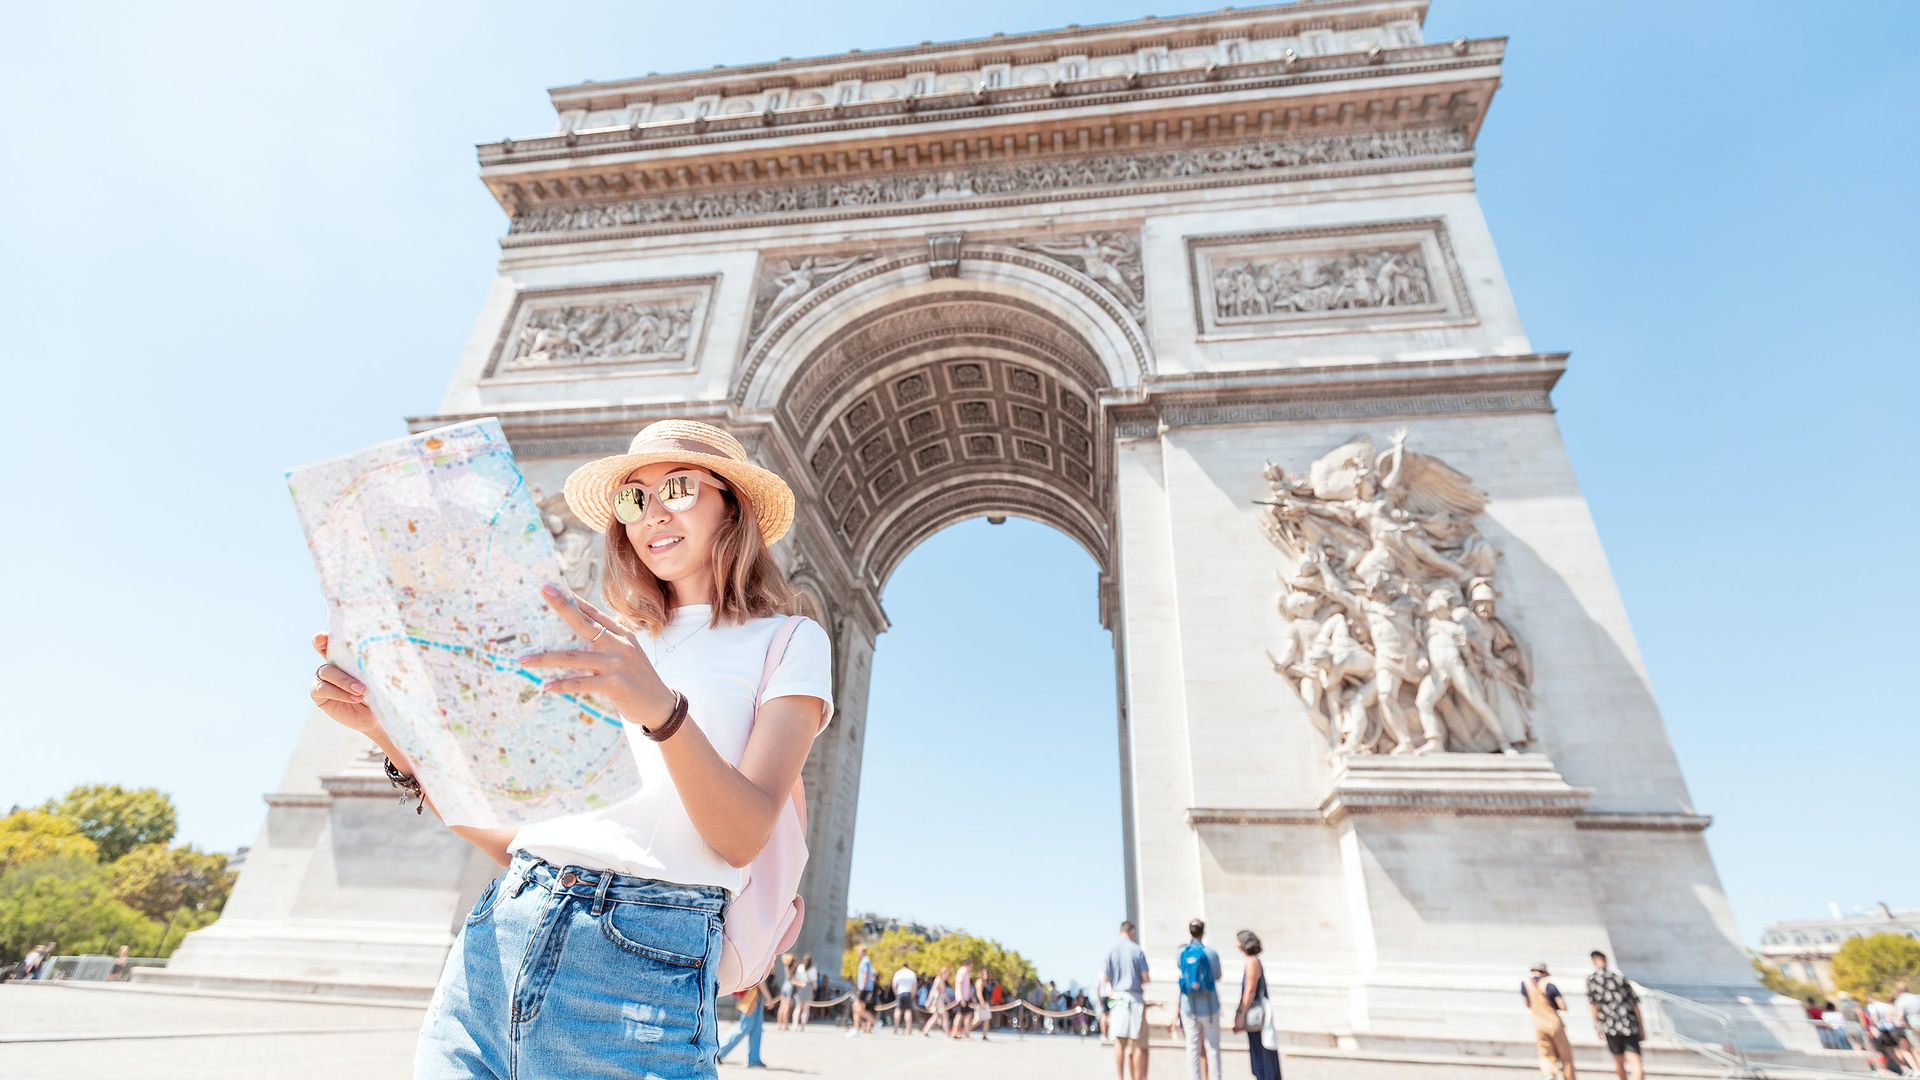 Discovering Arc de Triomphe: Skip-the-Line with Rooftop Access & Audio Tour